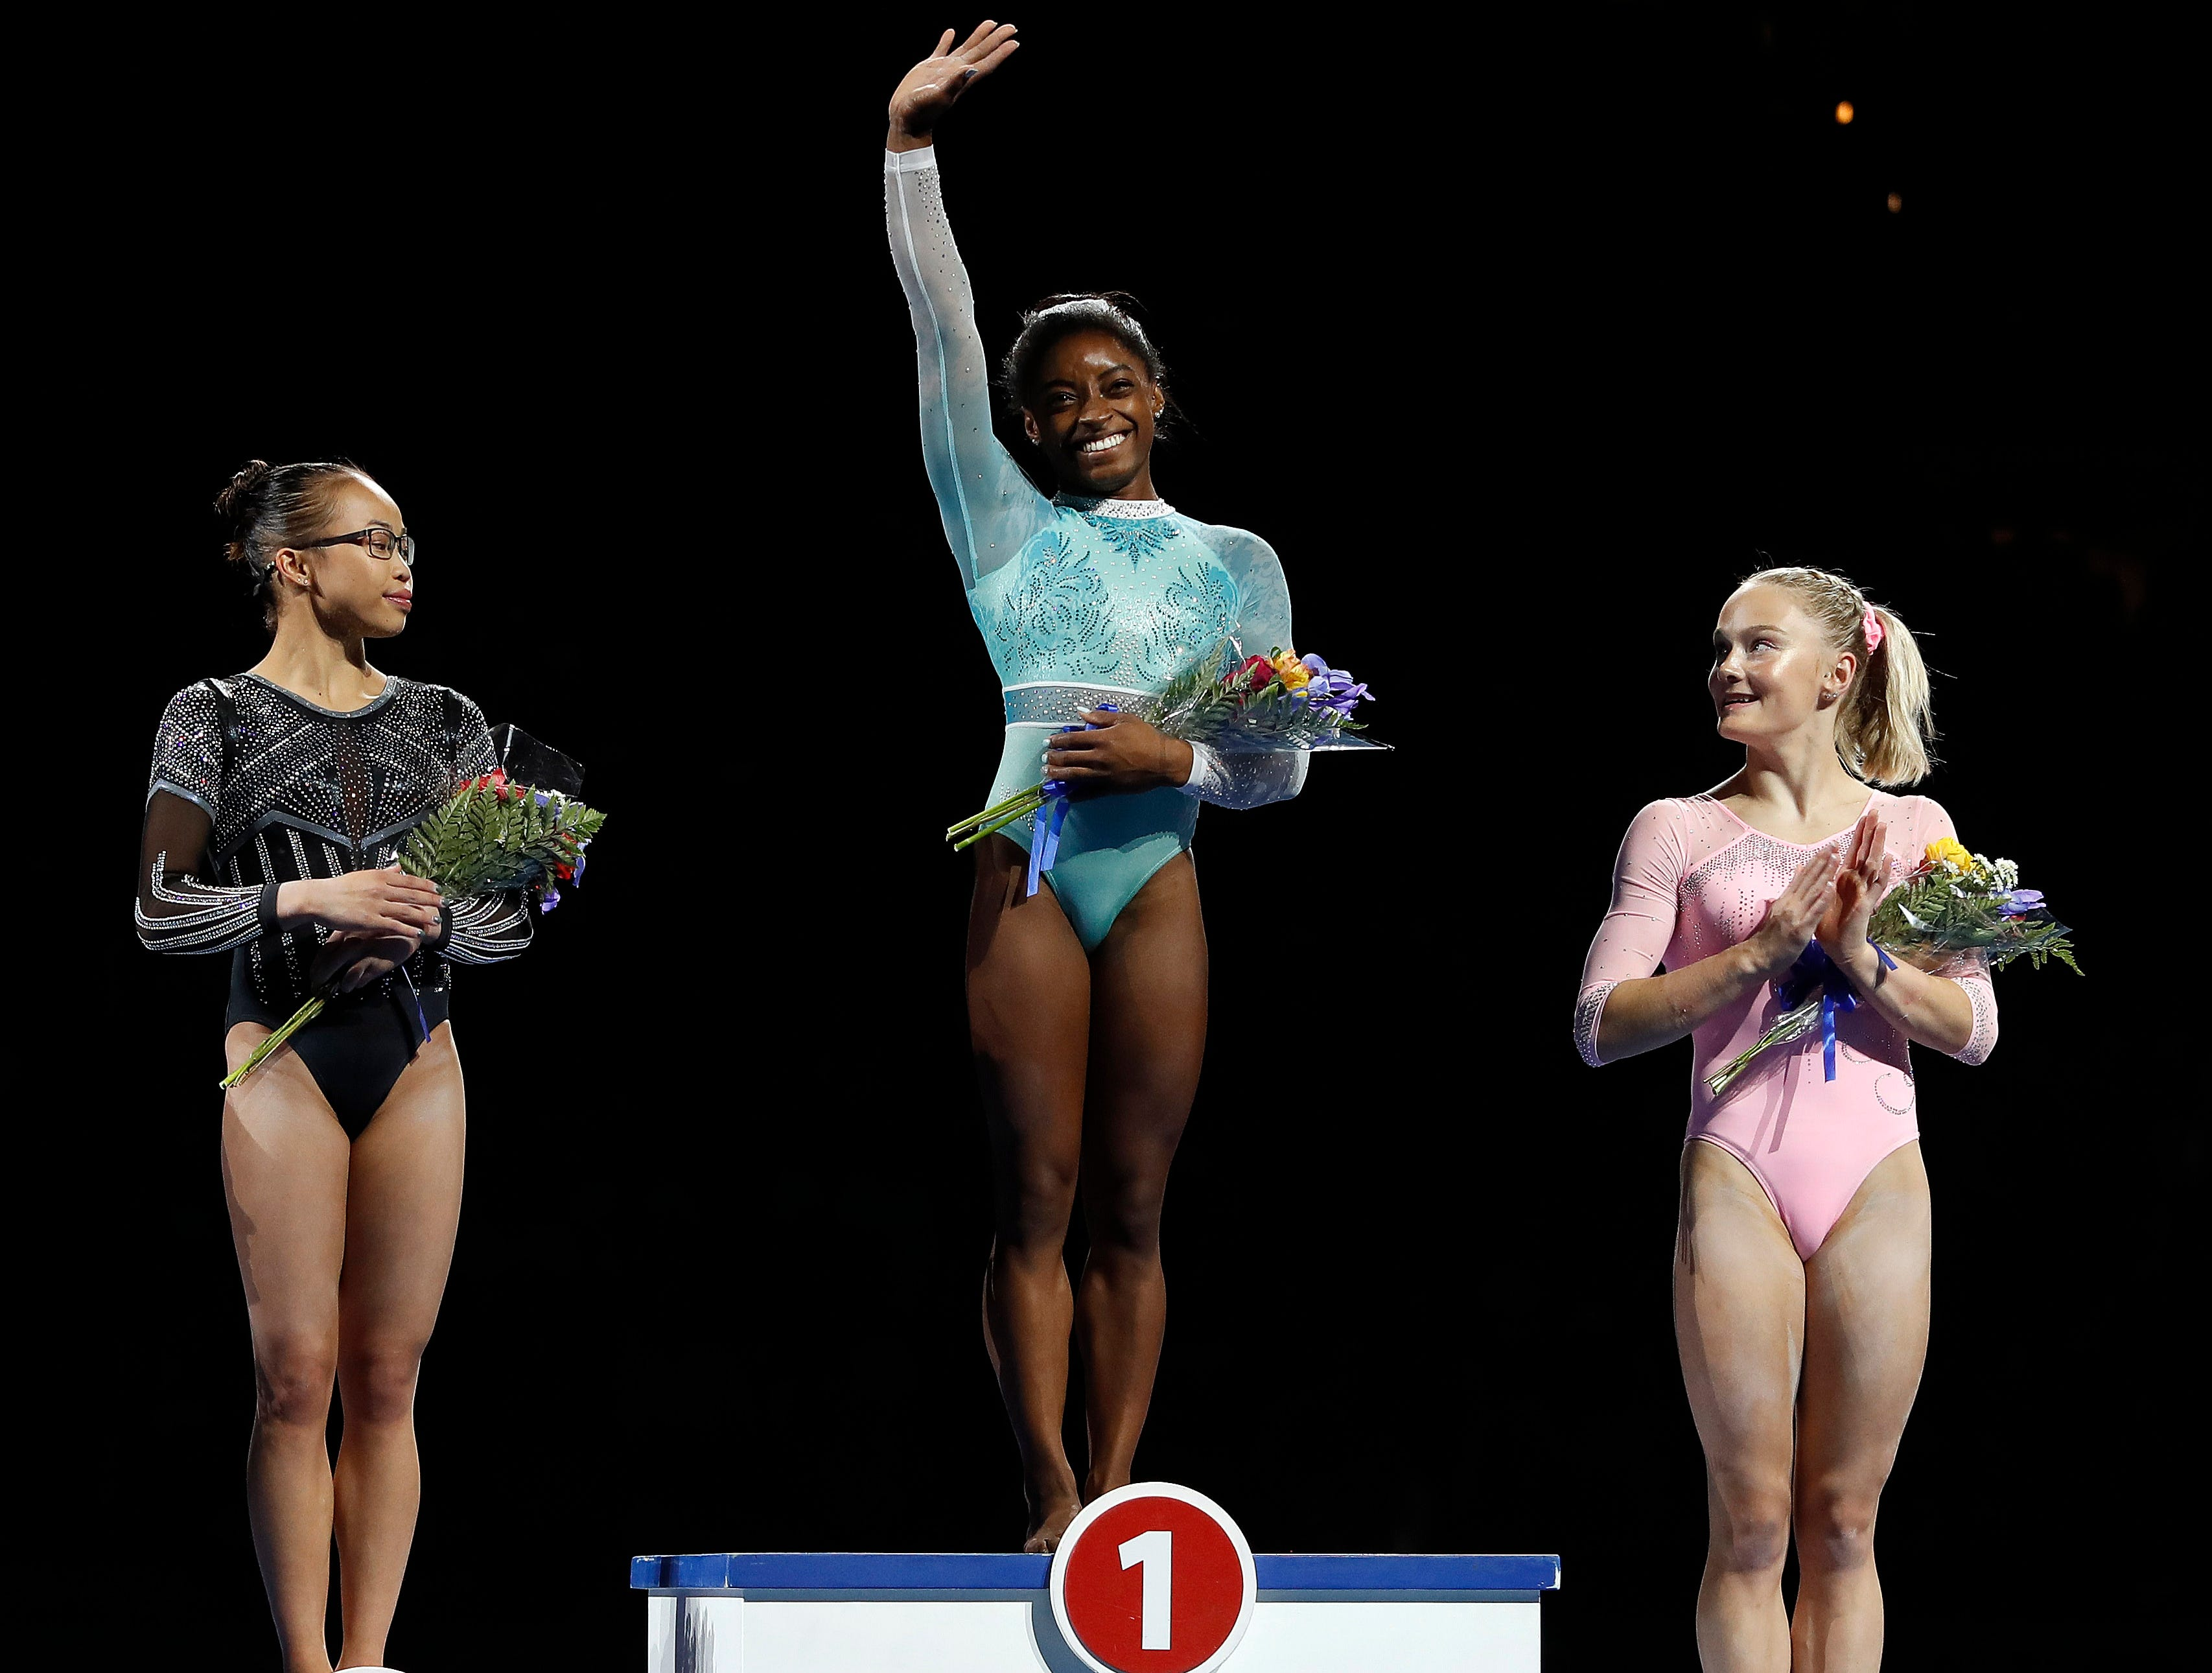 After a year away from the sport, Simone Biles comes back to win the  women's all-around during the 2018 U.S. Gymnastics Championships at TD Garden. Here's Biles is with Morgan Hurd and Riley MCusker.